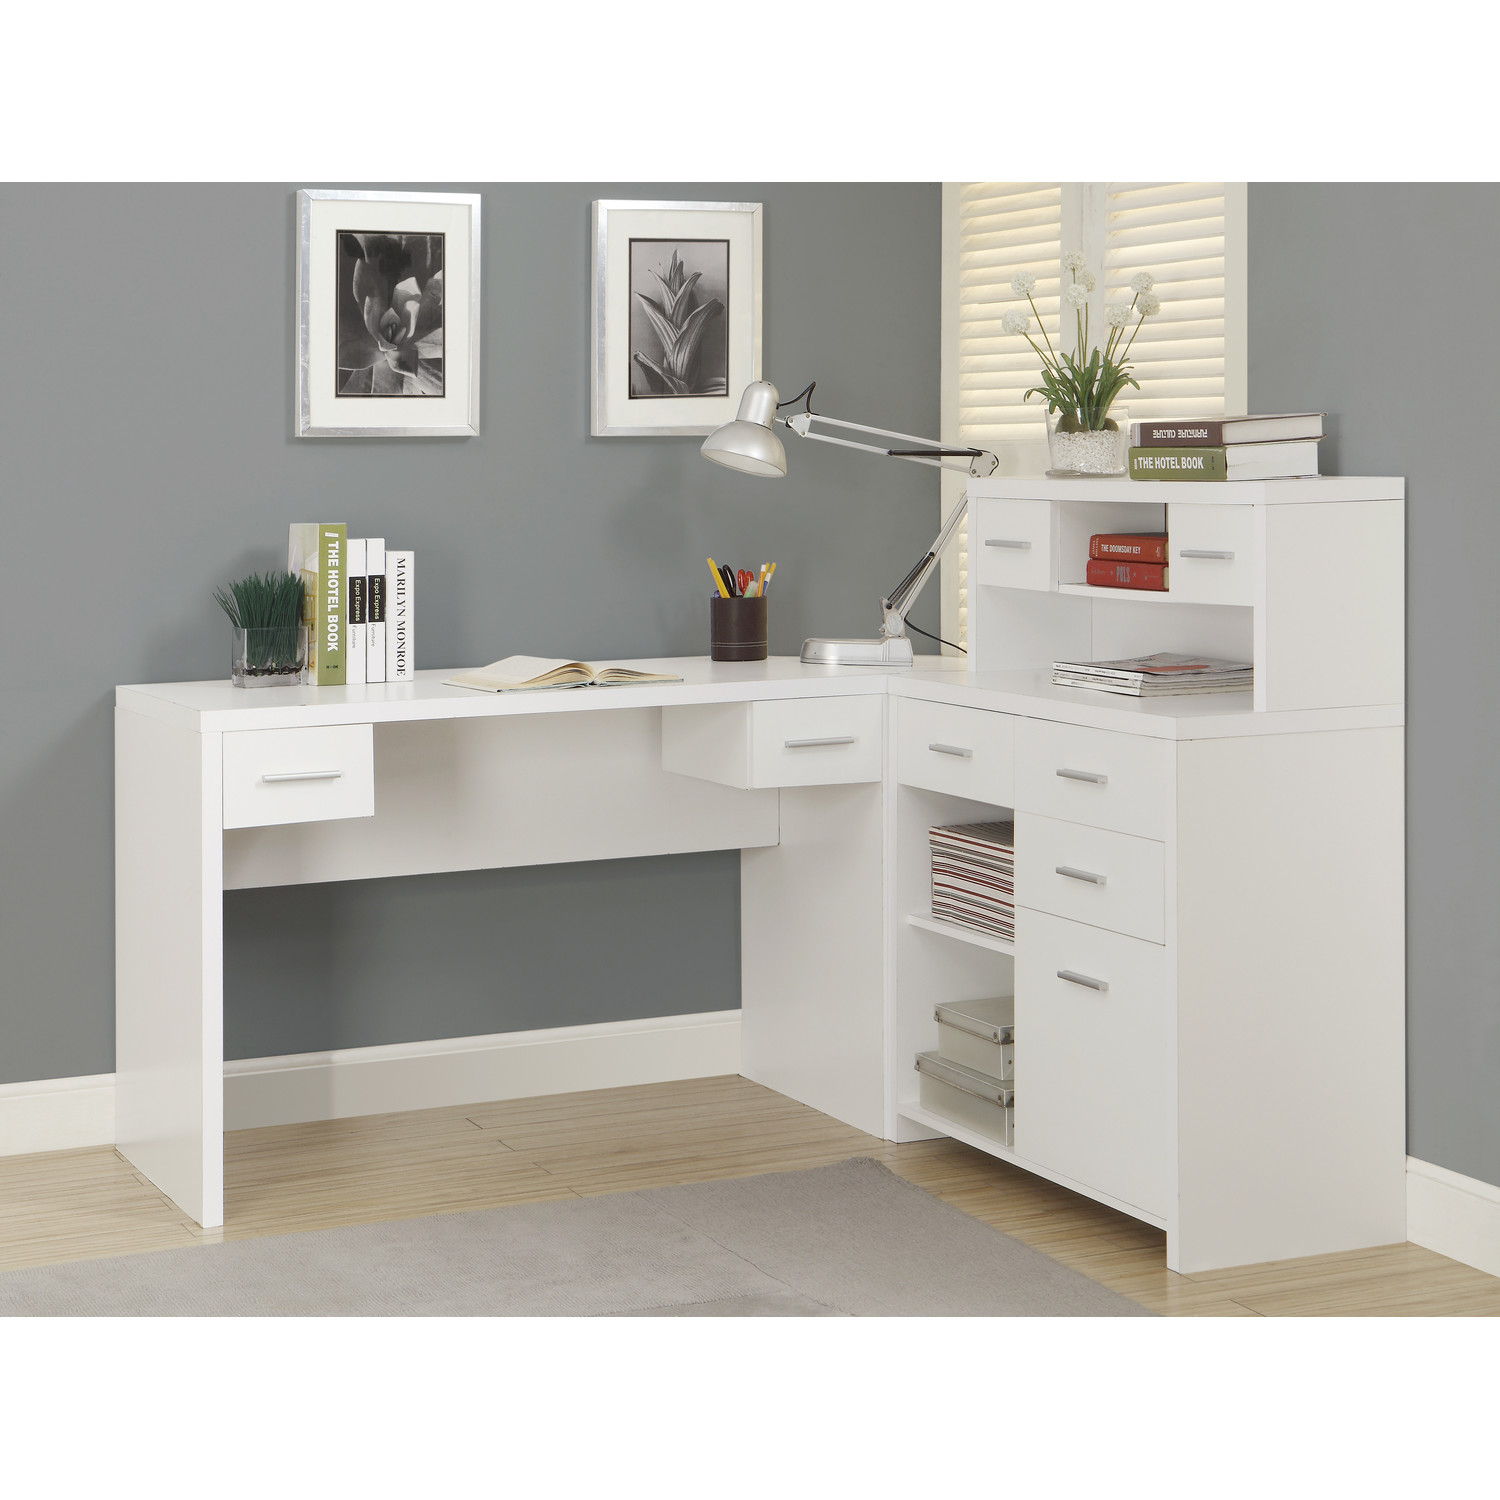 Image of: Antique White Desk with Hutch Study